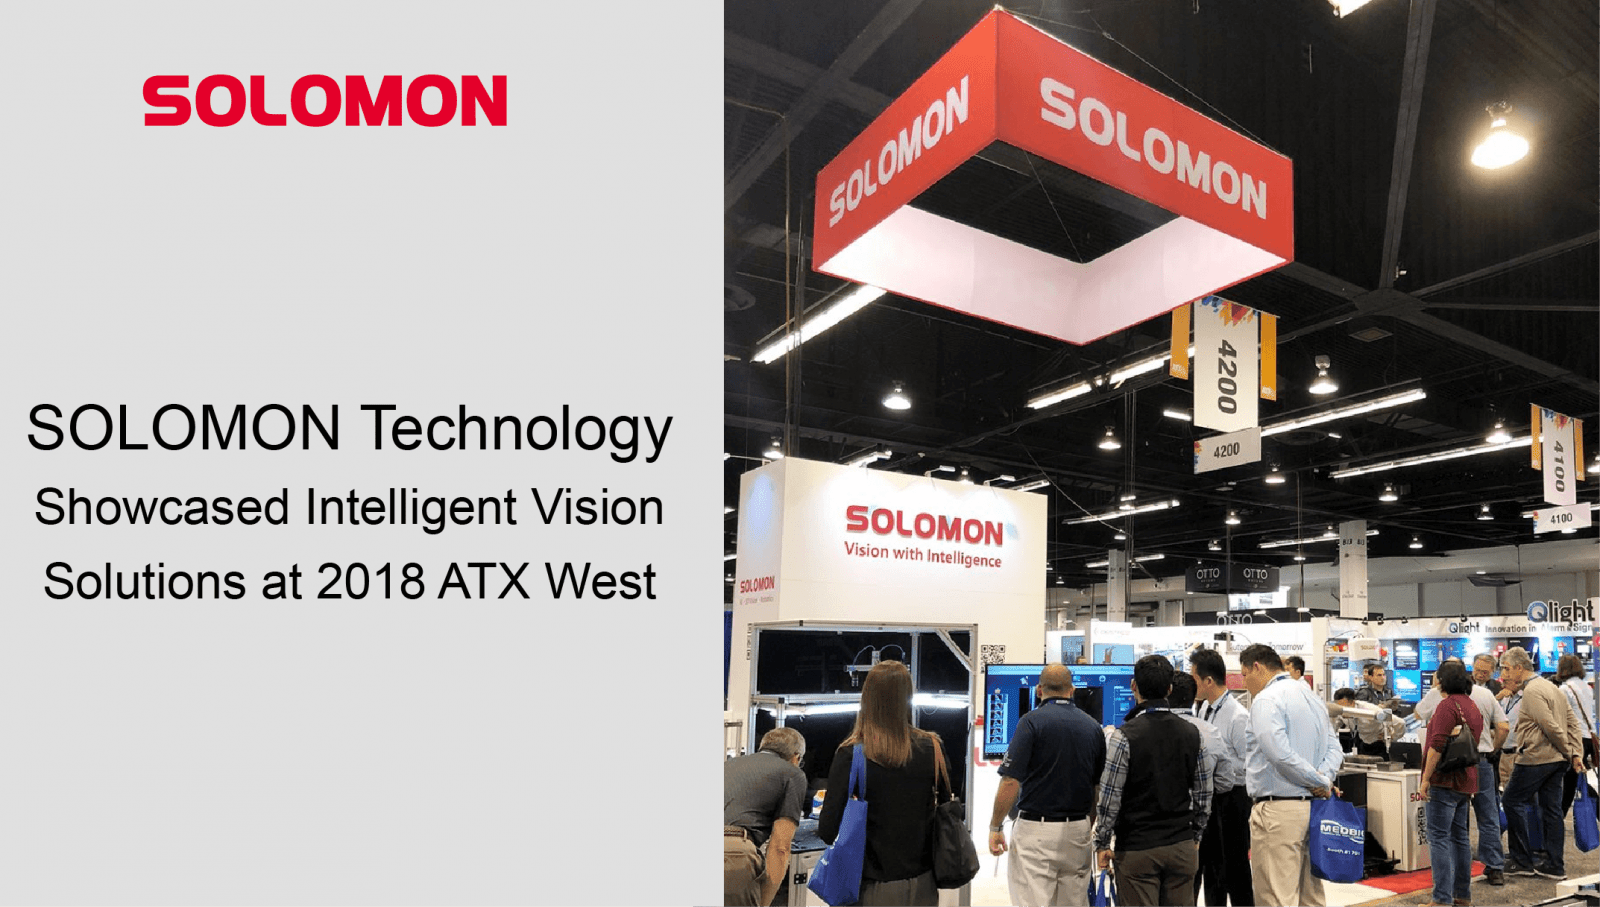 SOLOMON Technology Showcased Intelligent Vision Solutions at 2018 ATX West